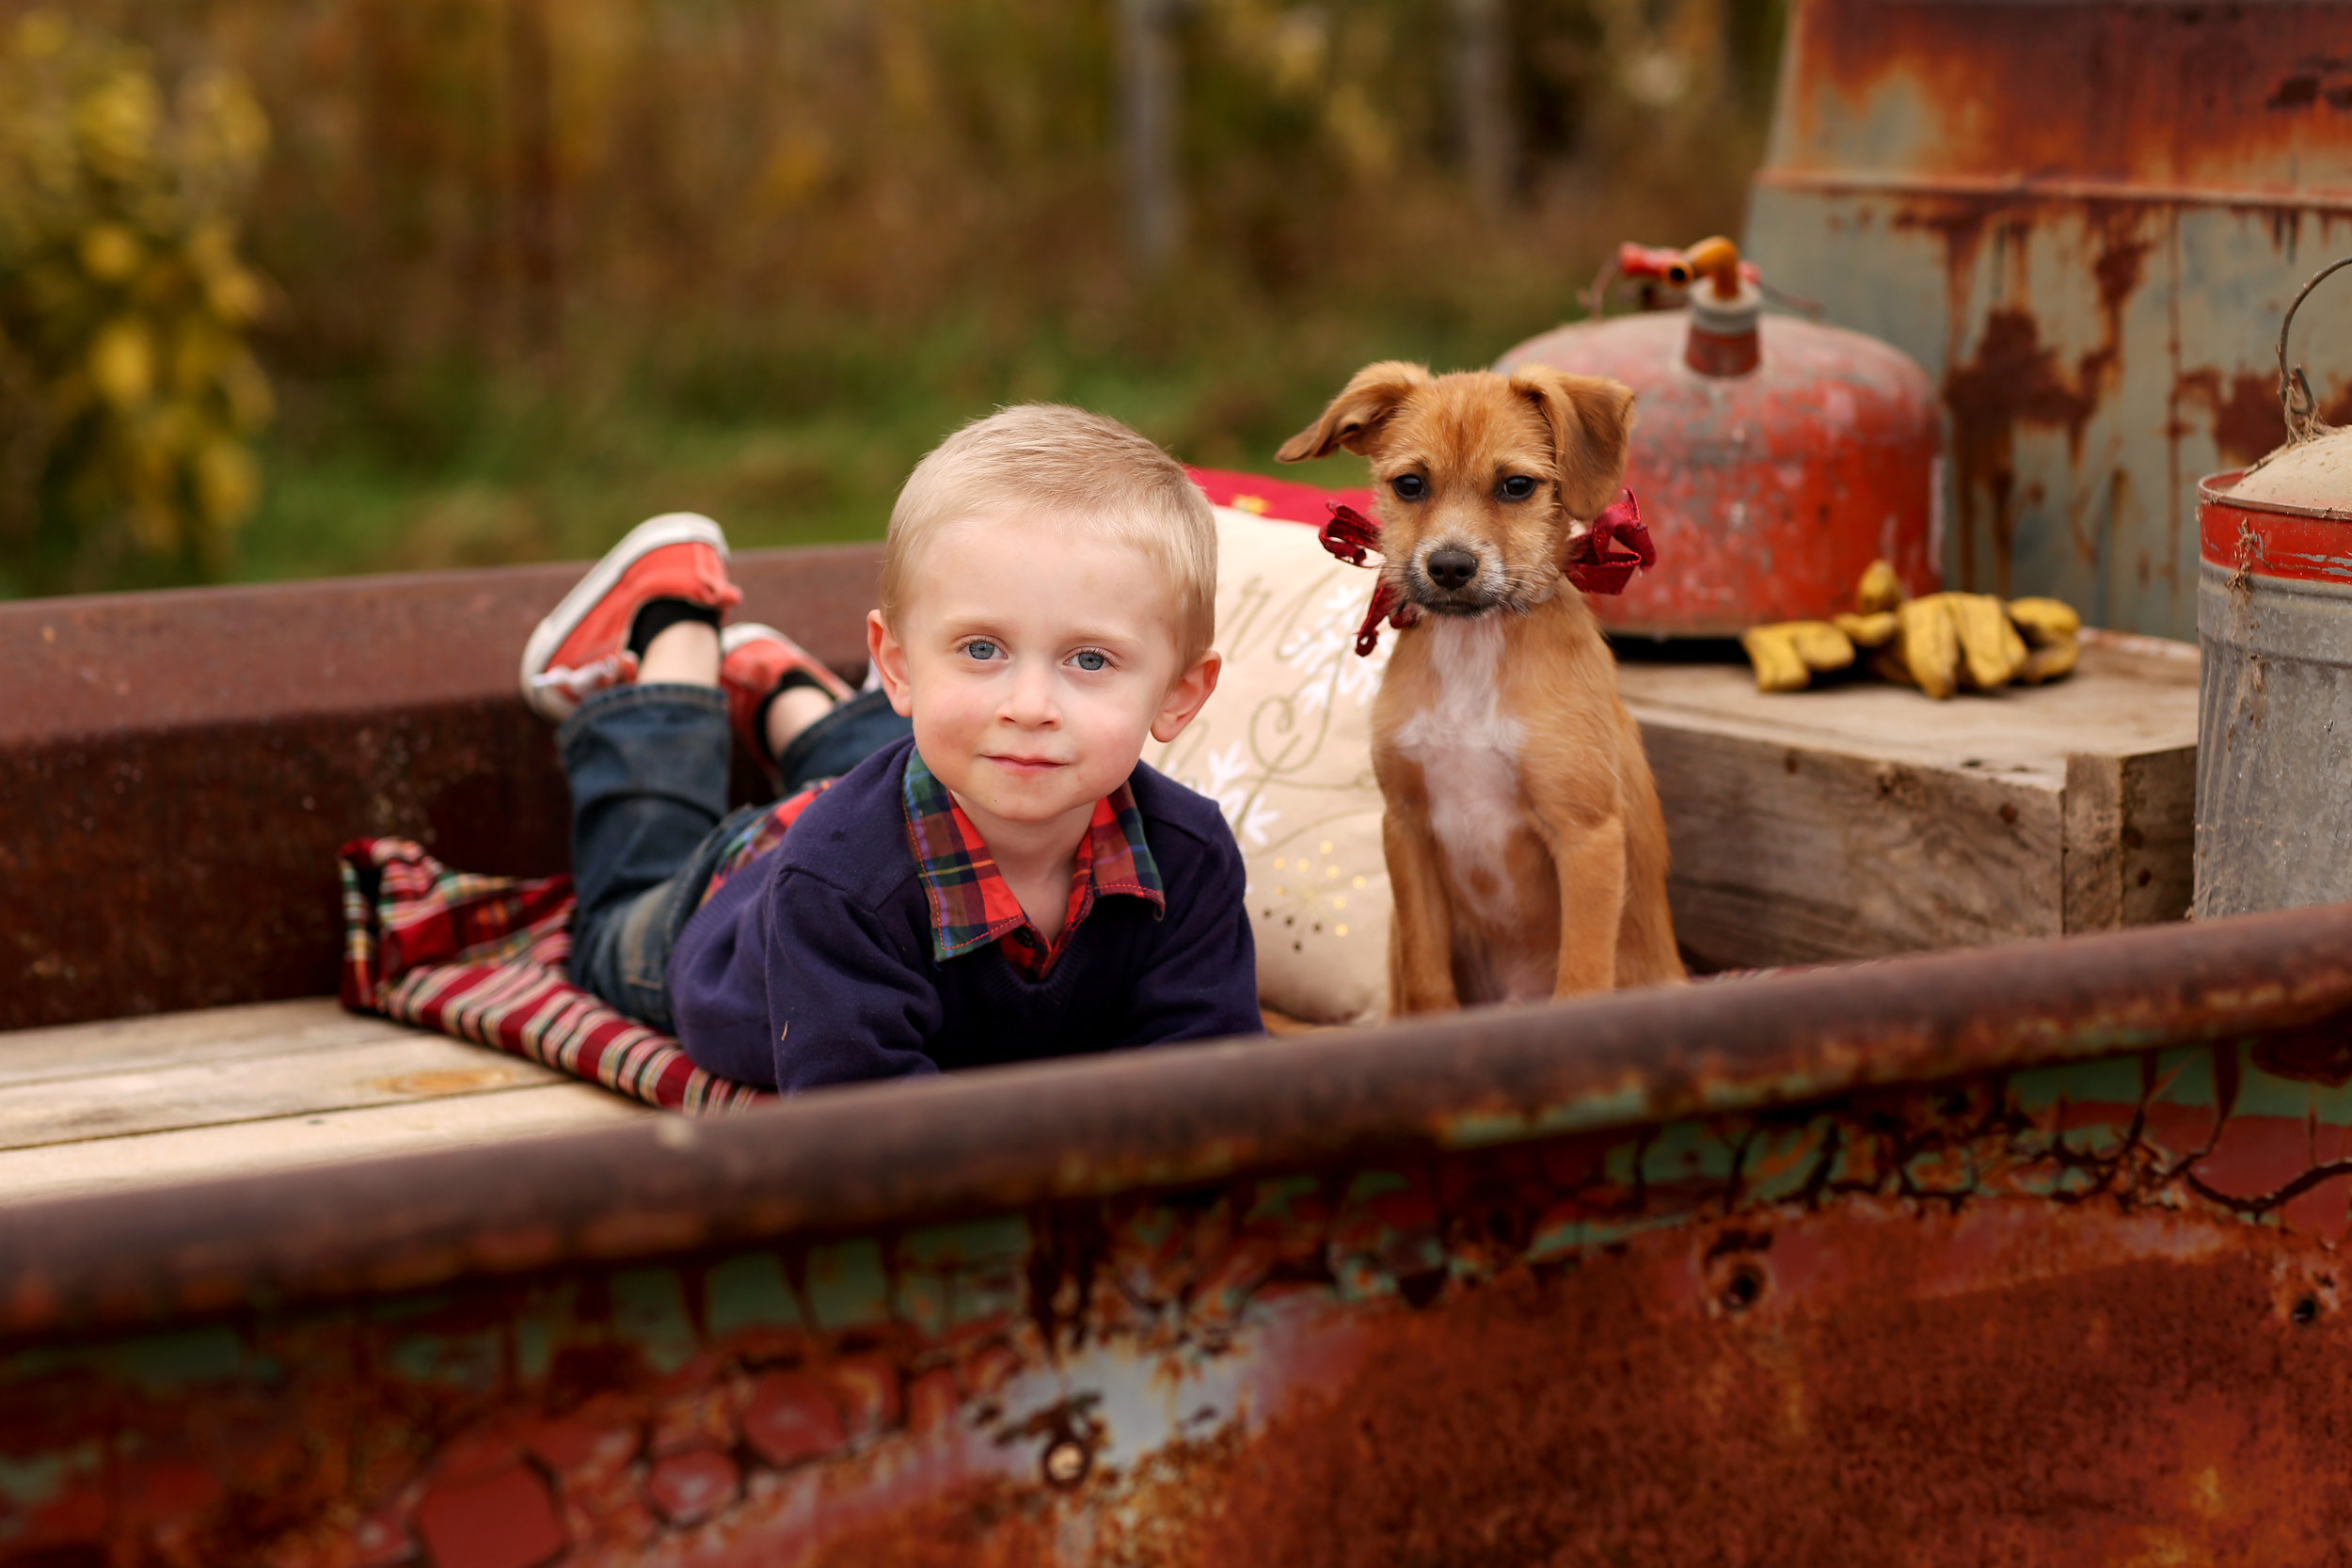 KIDS HOLIDAY PHOTOS | A Puppy for Christmas